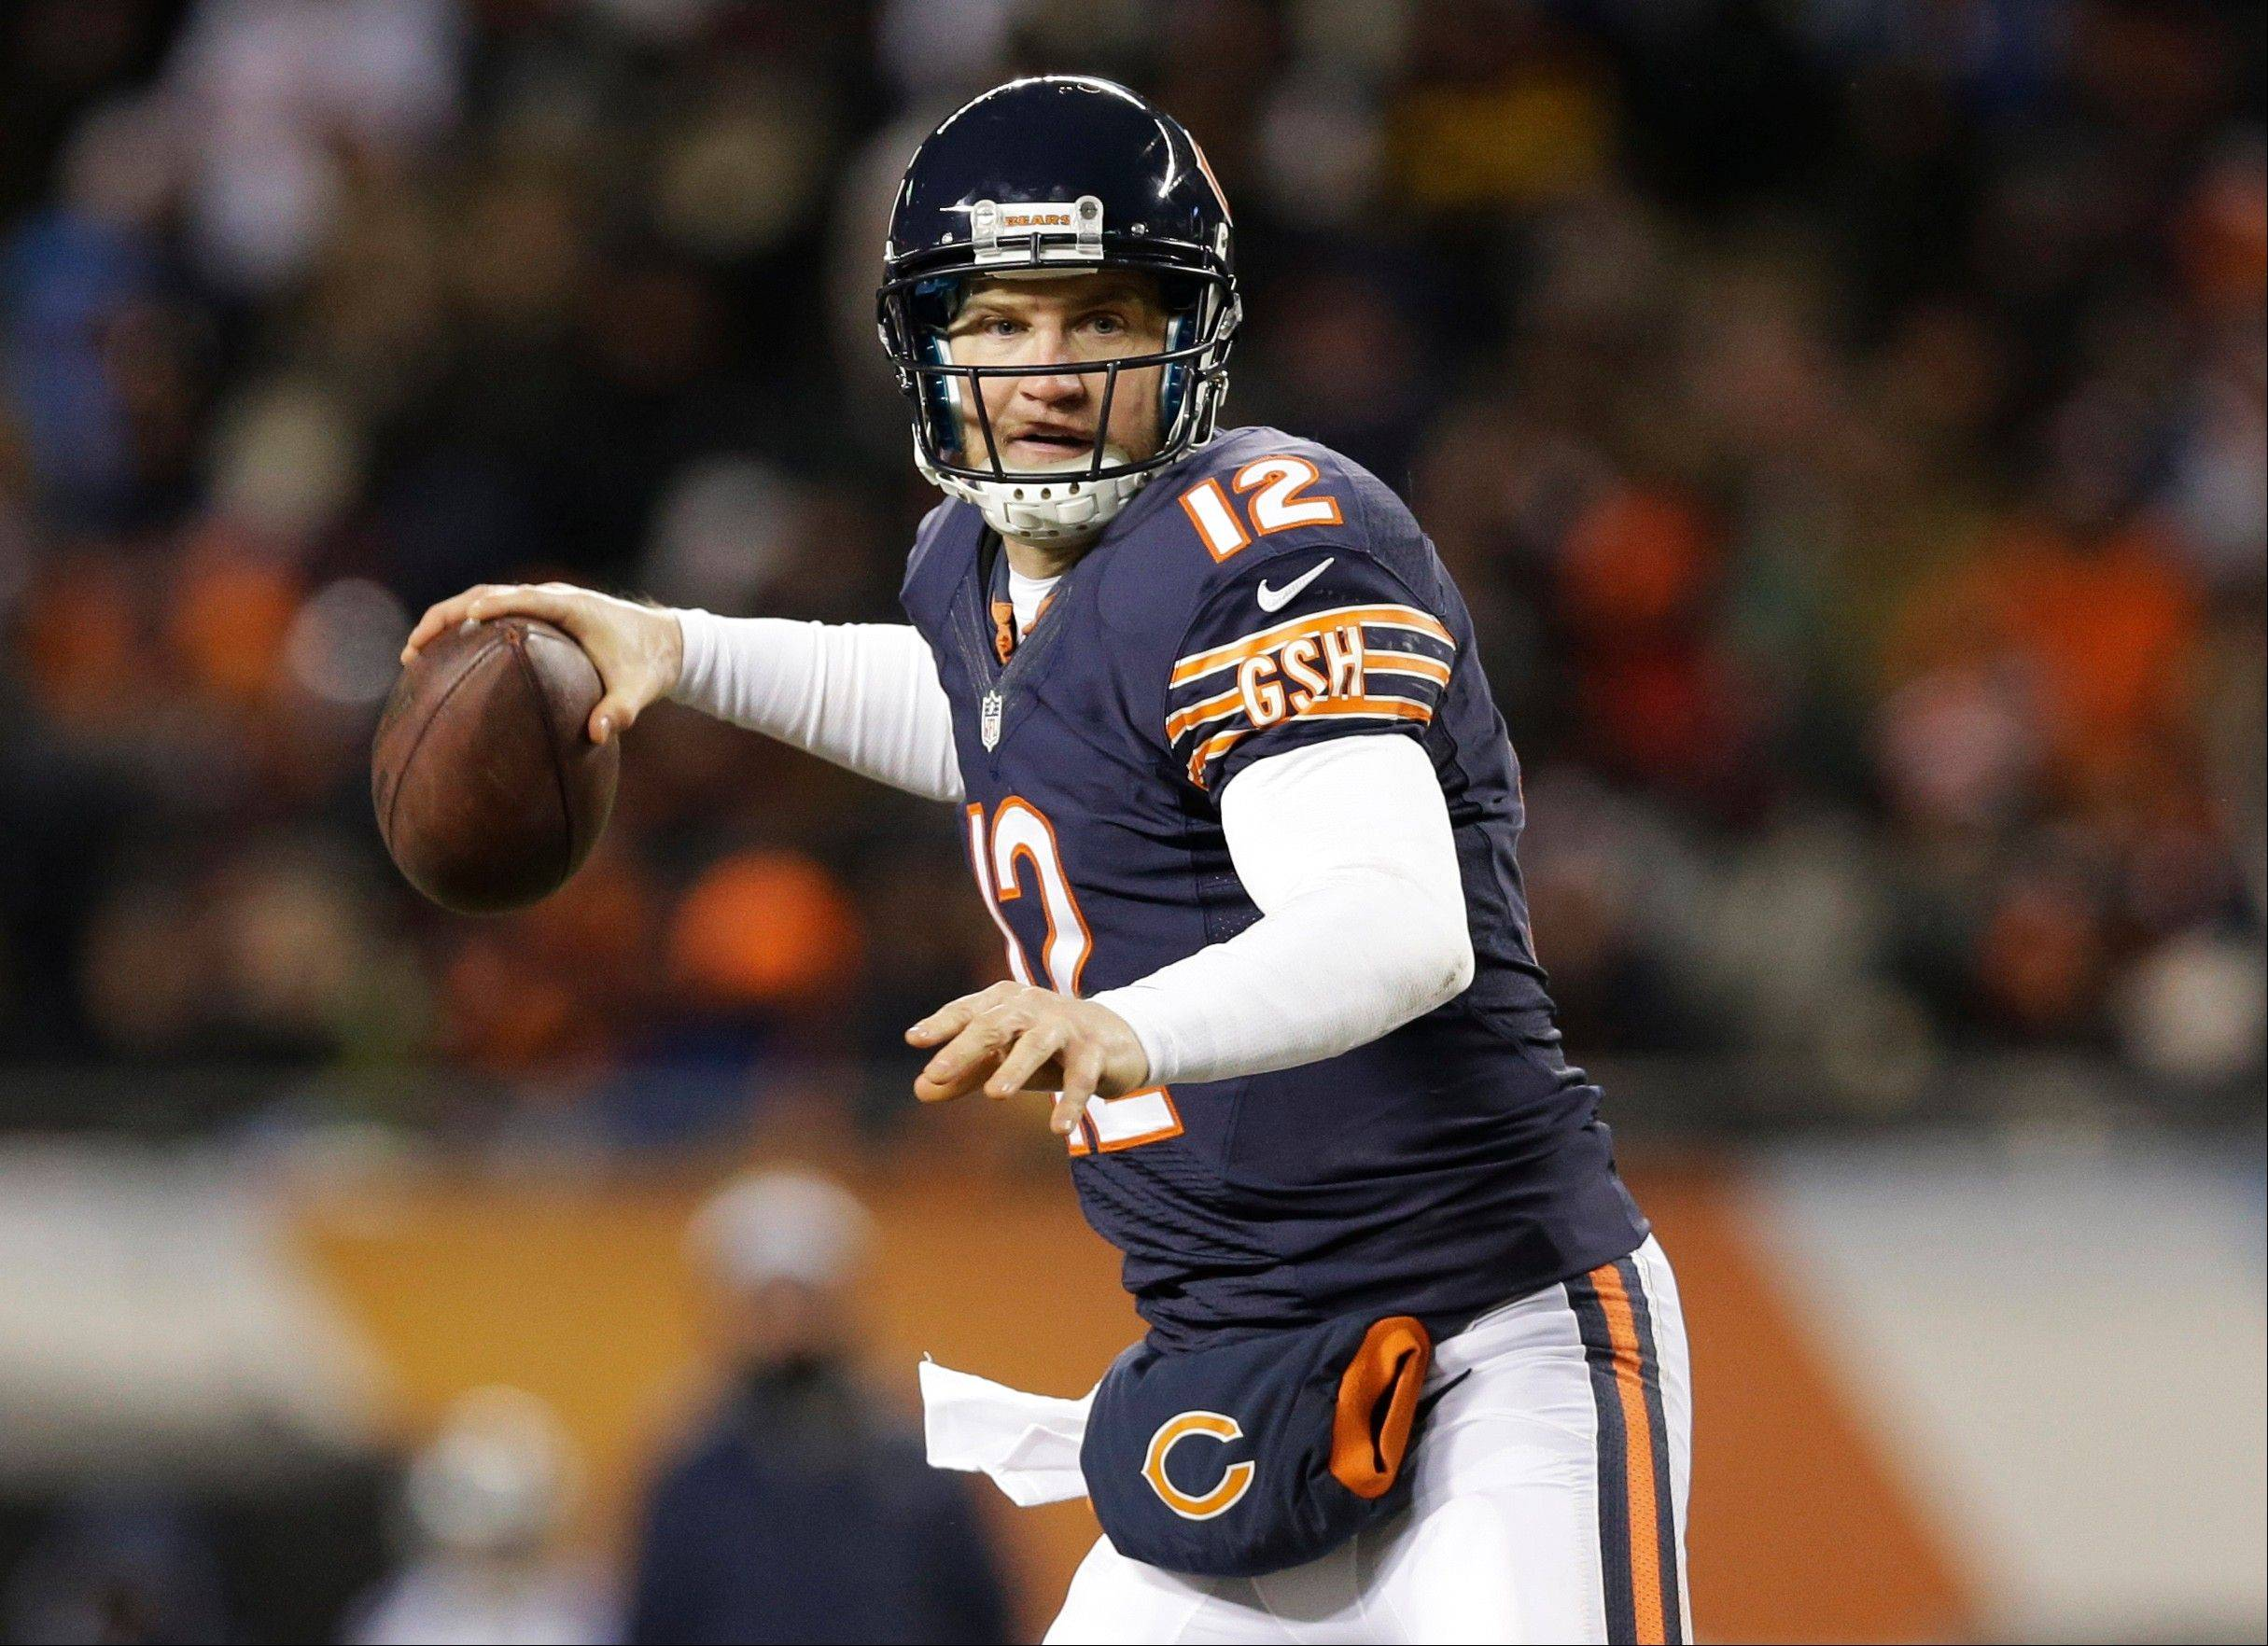 Bears quarterback Josh McCown (12) prepares to pass against the Dallas Cowboys during the first half of an NFL football game, Monday, Dec. 9, 2013, in Chicago.